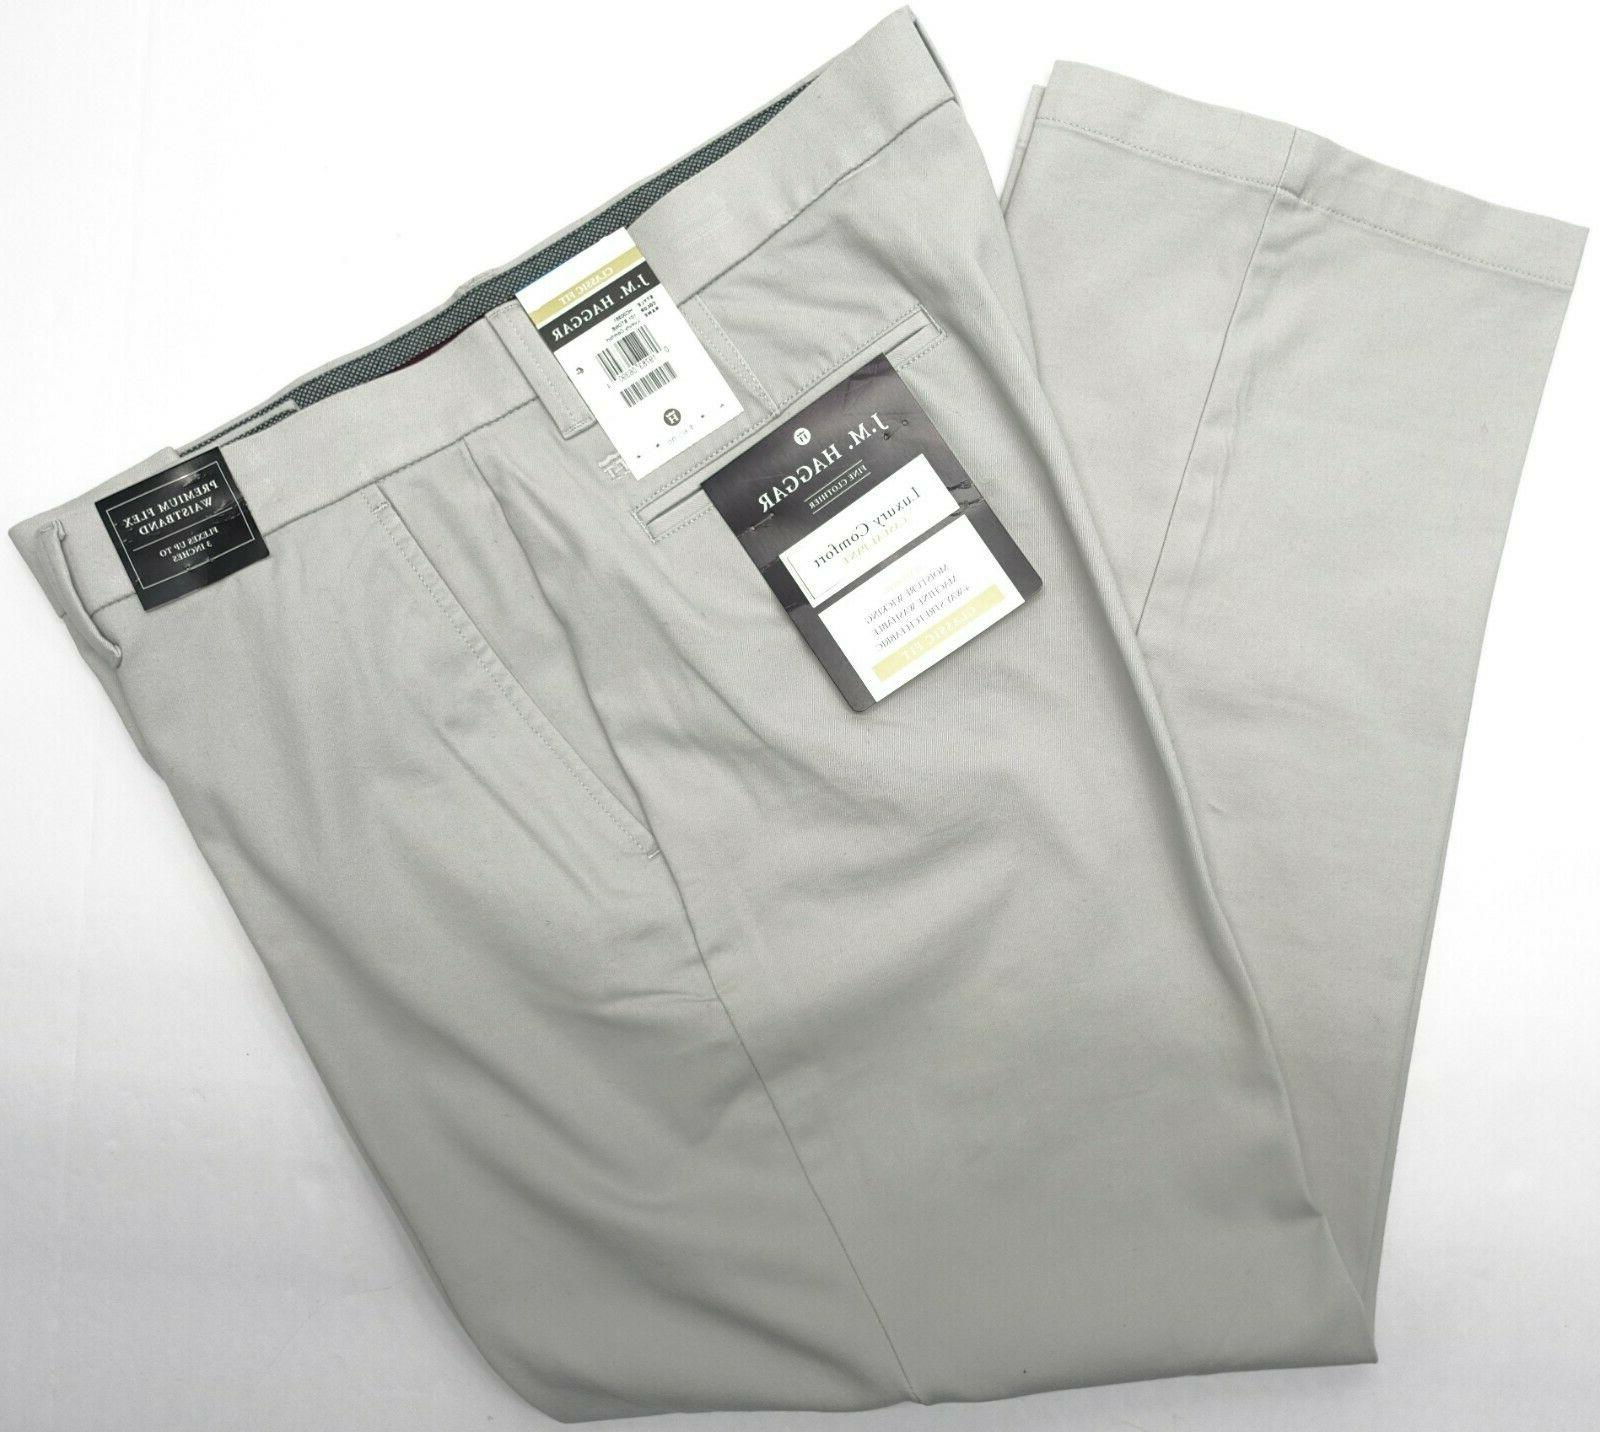 Men Comfort Pants Waist Way Stretch